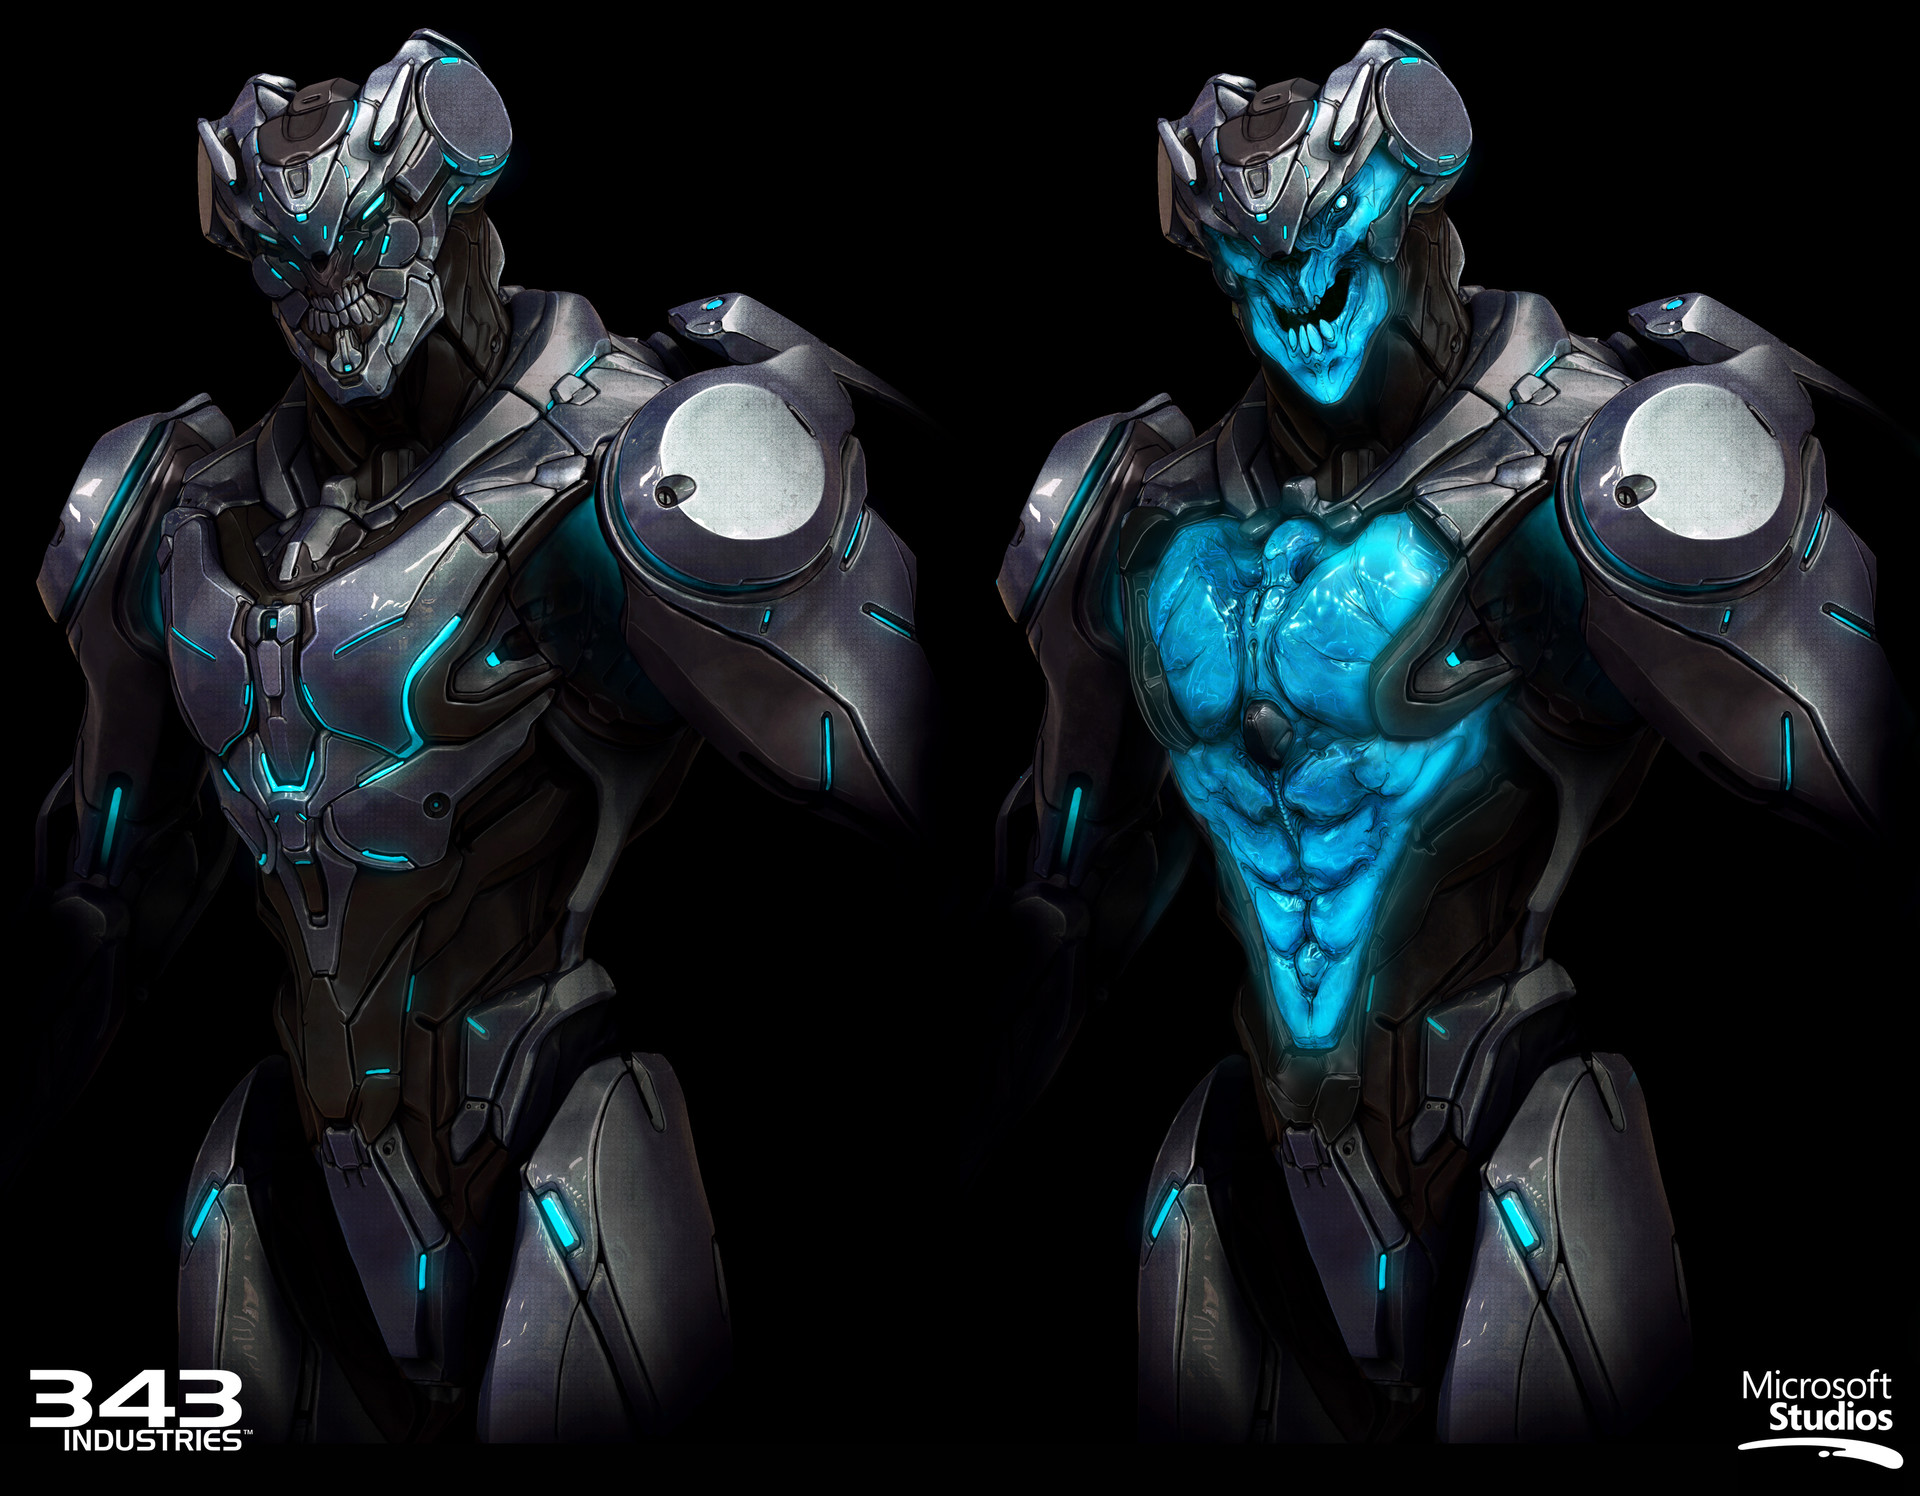 Massout model & concept art (Zbrush sculpt, Keyshot render, PS paintover).